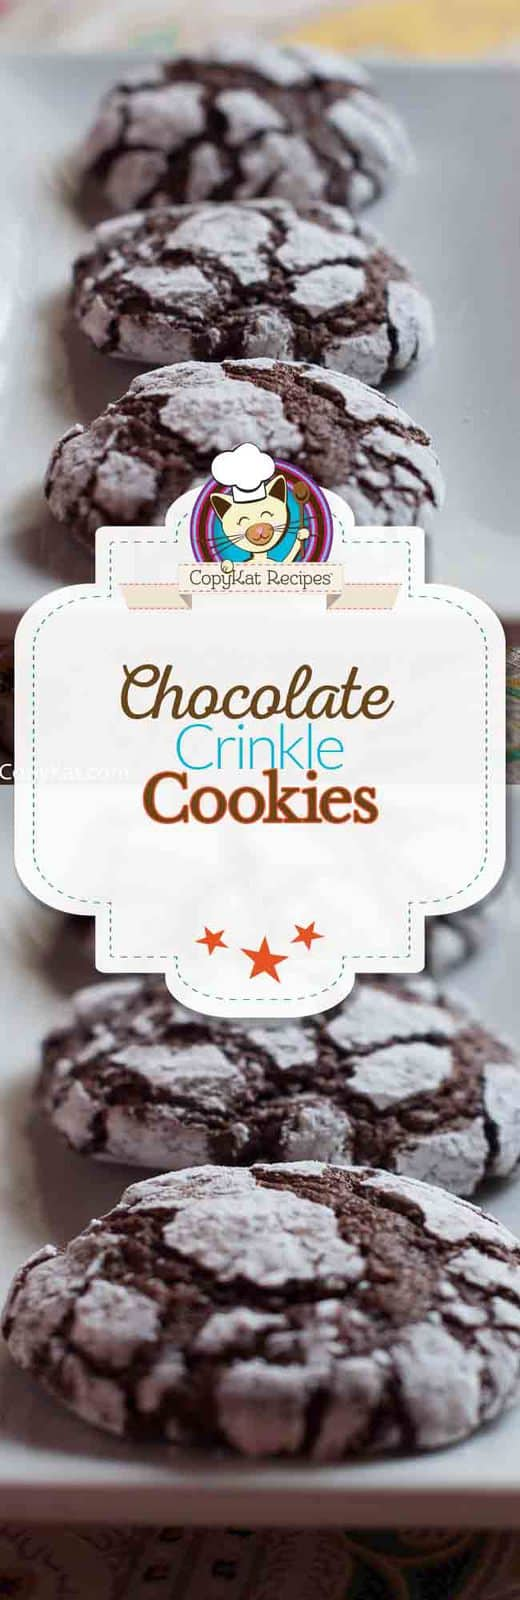 Make these delicious chocolate crinkle cookies.   So easy to make, you will love these.